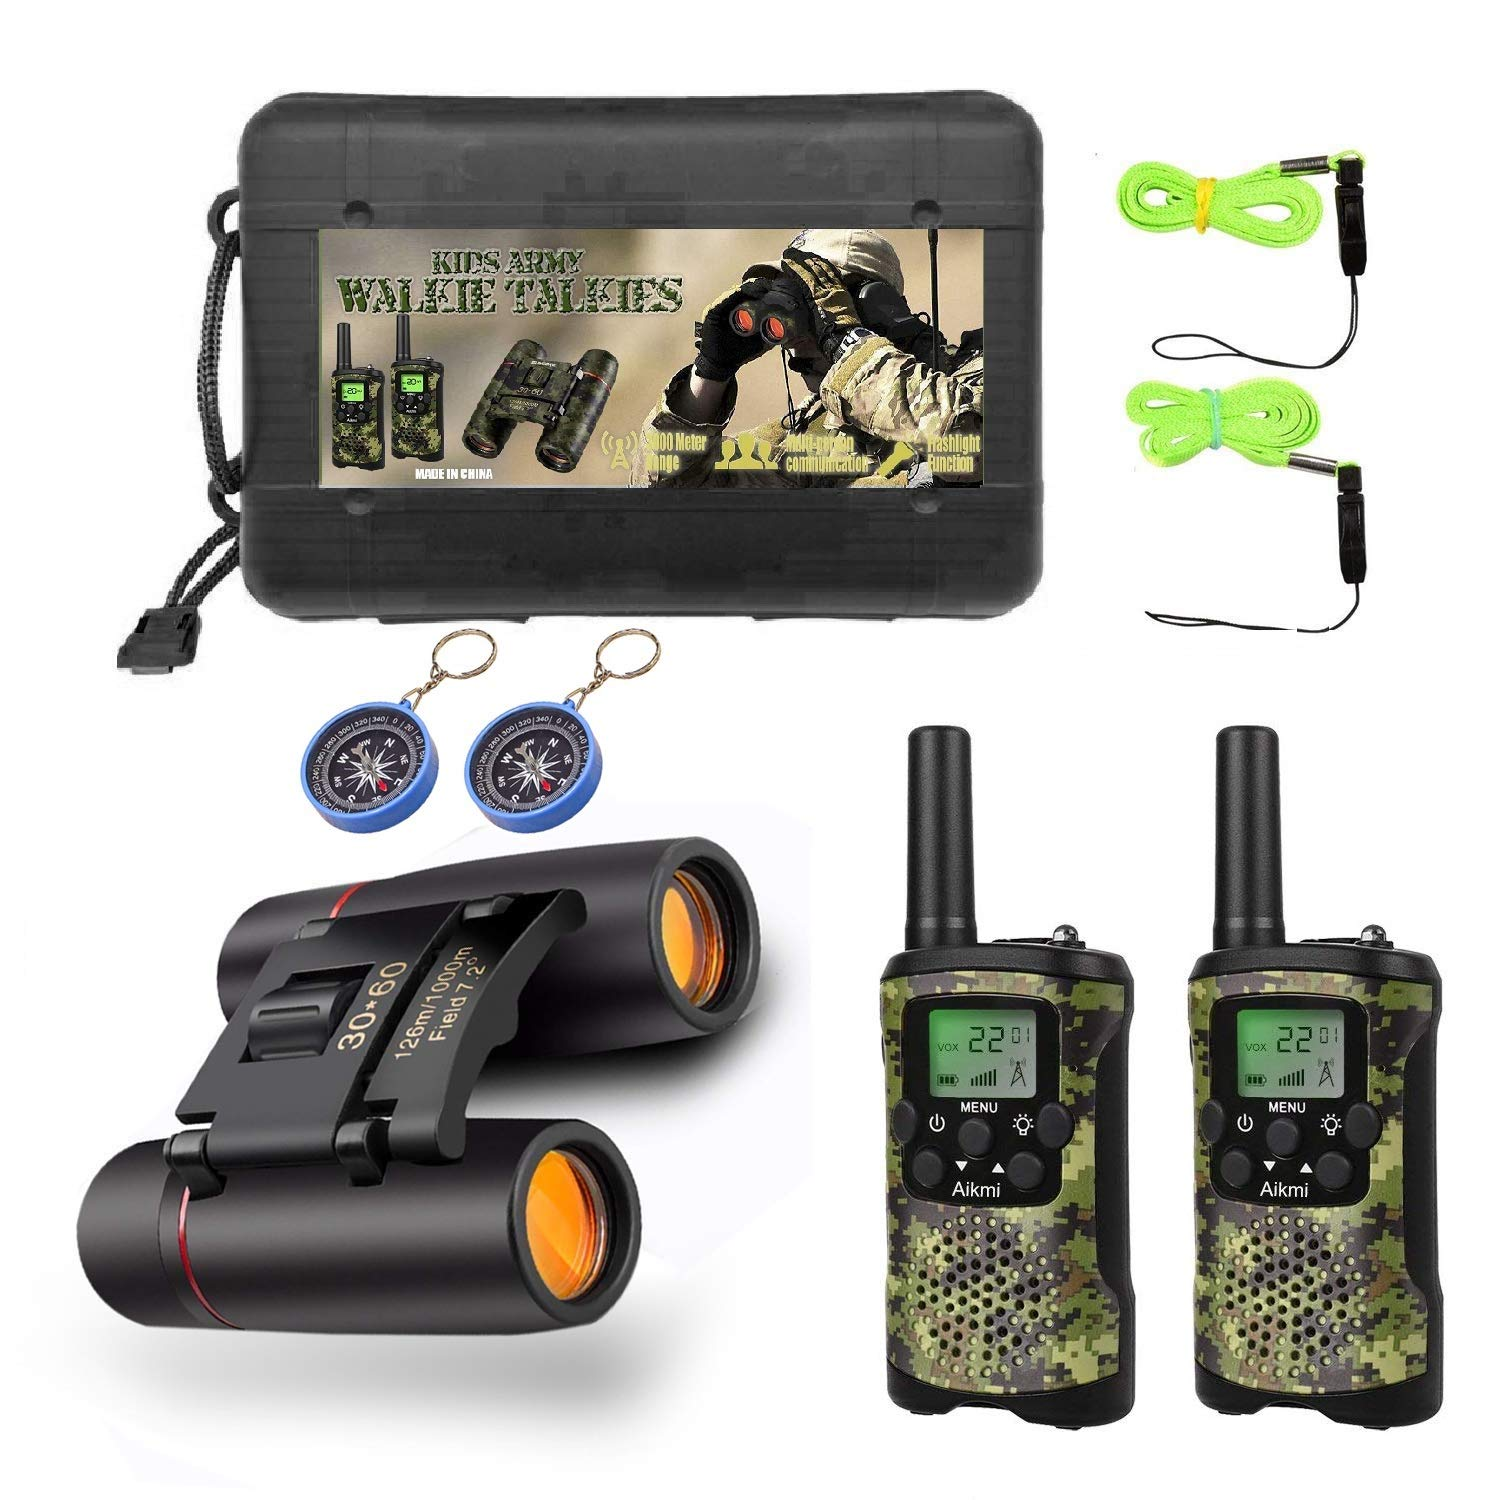 Kids Walkie Talkies Binoculars Toys - Mini Binocular Walkie Talkies for Kids Toy Birthday Gift for 4-10 Year Old Boys and Girls Fit Games, Adventure and Camping. Compass Included by Aikmi (Image #7)